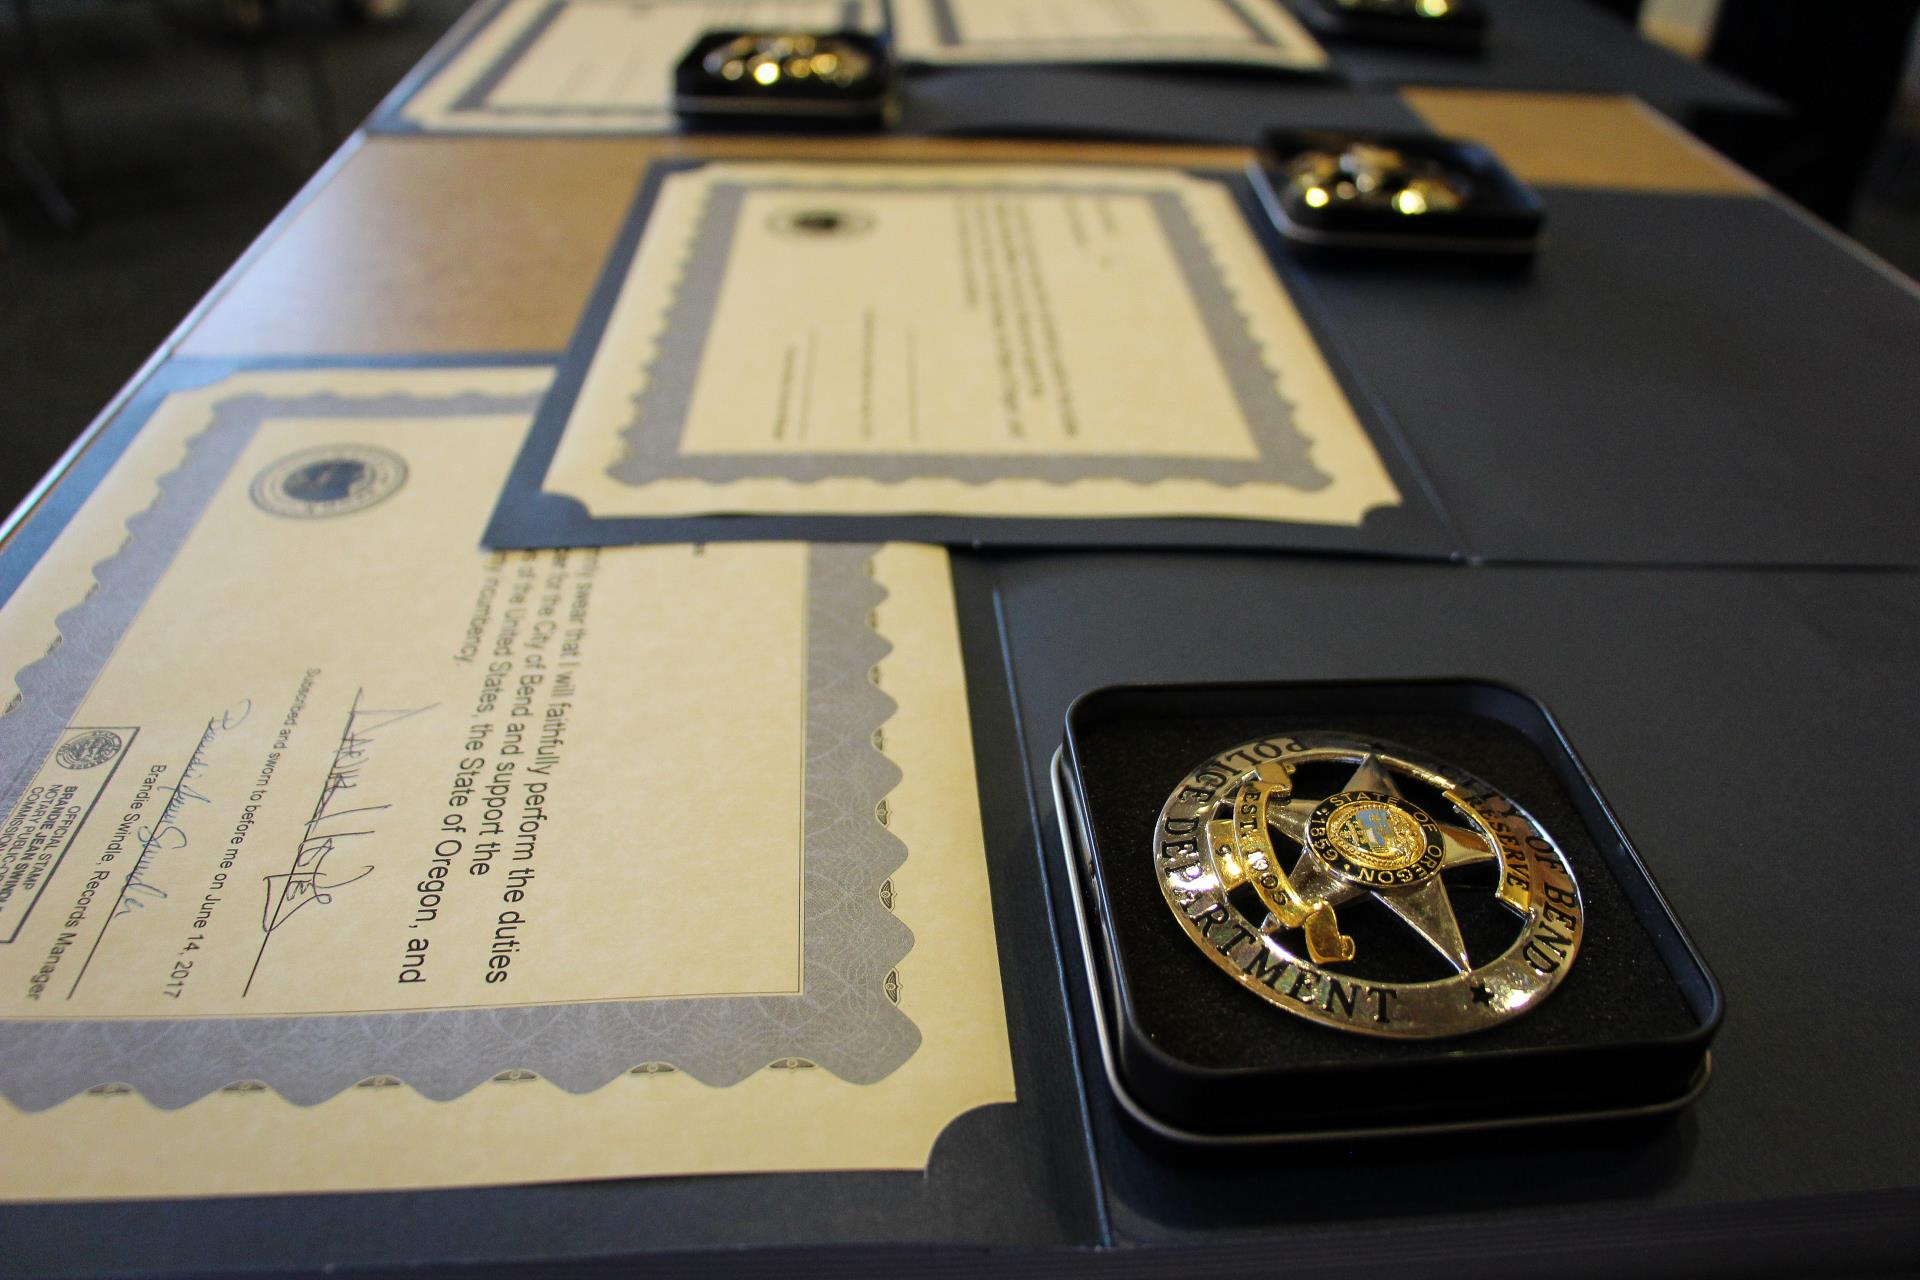 badge and certificates laid out on a table